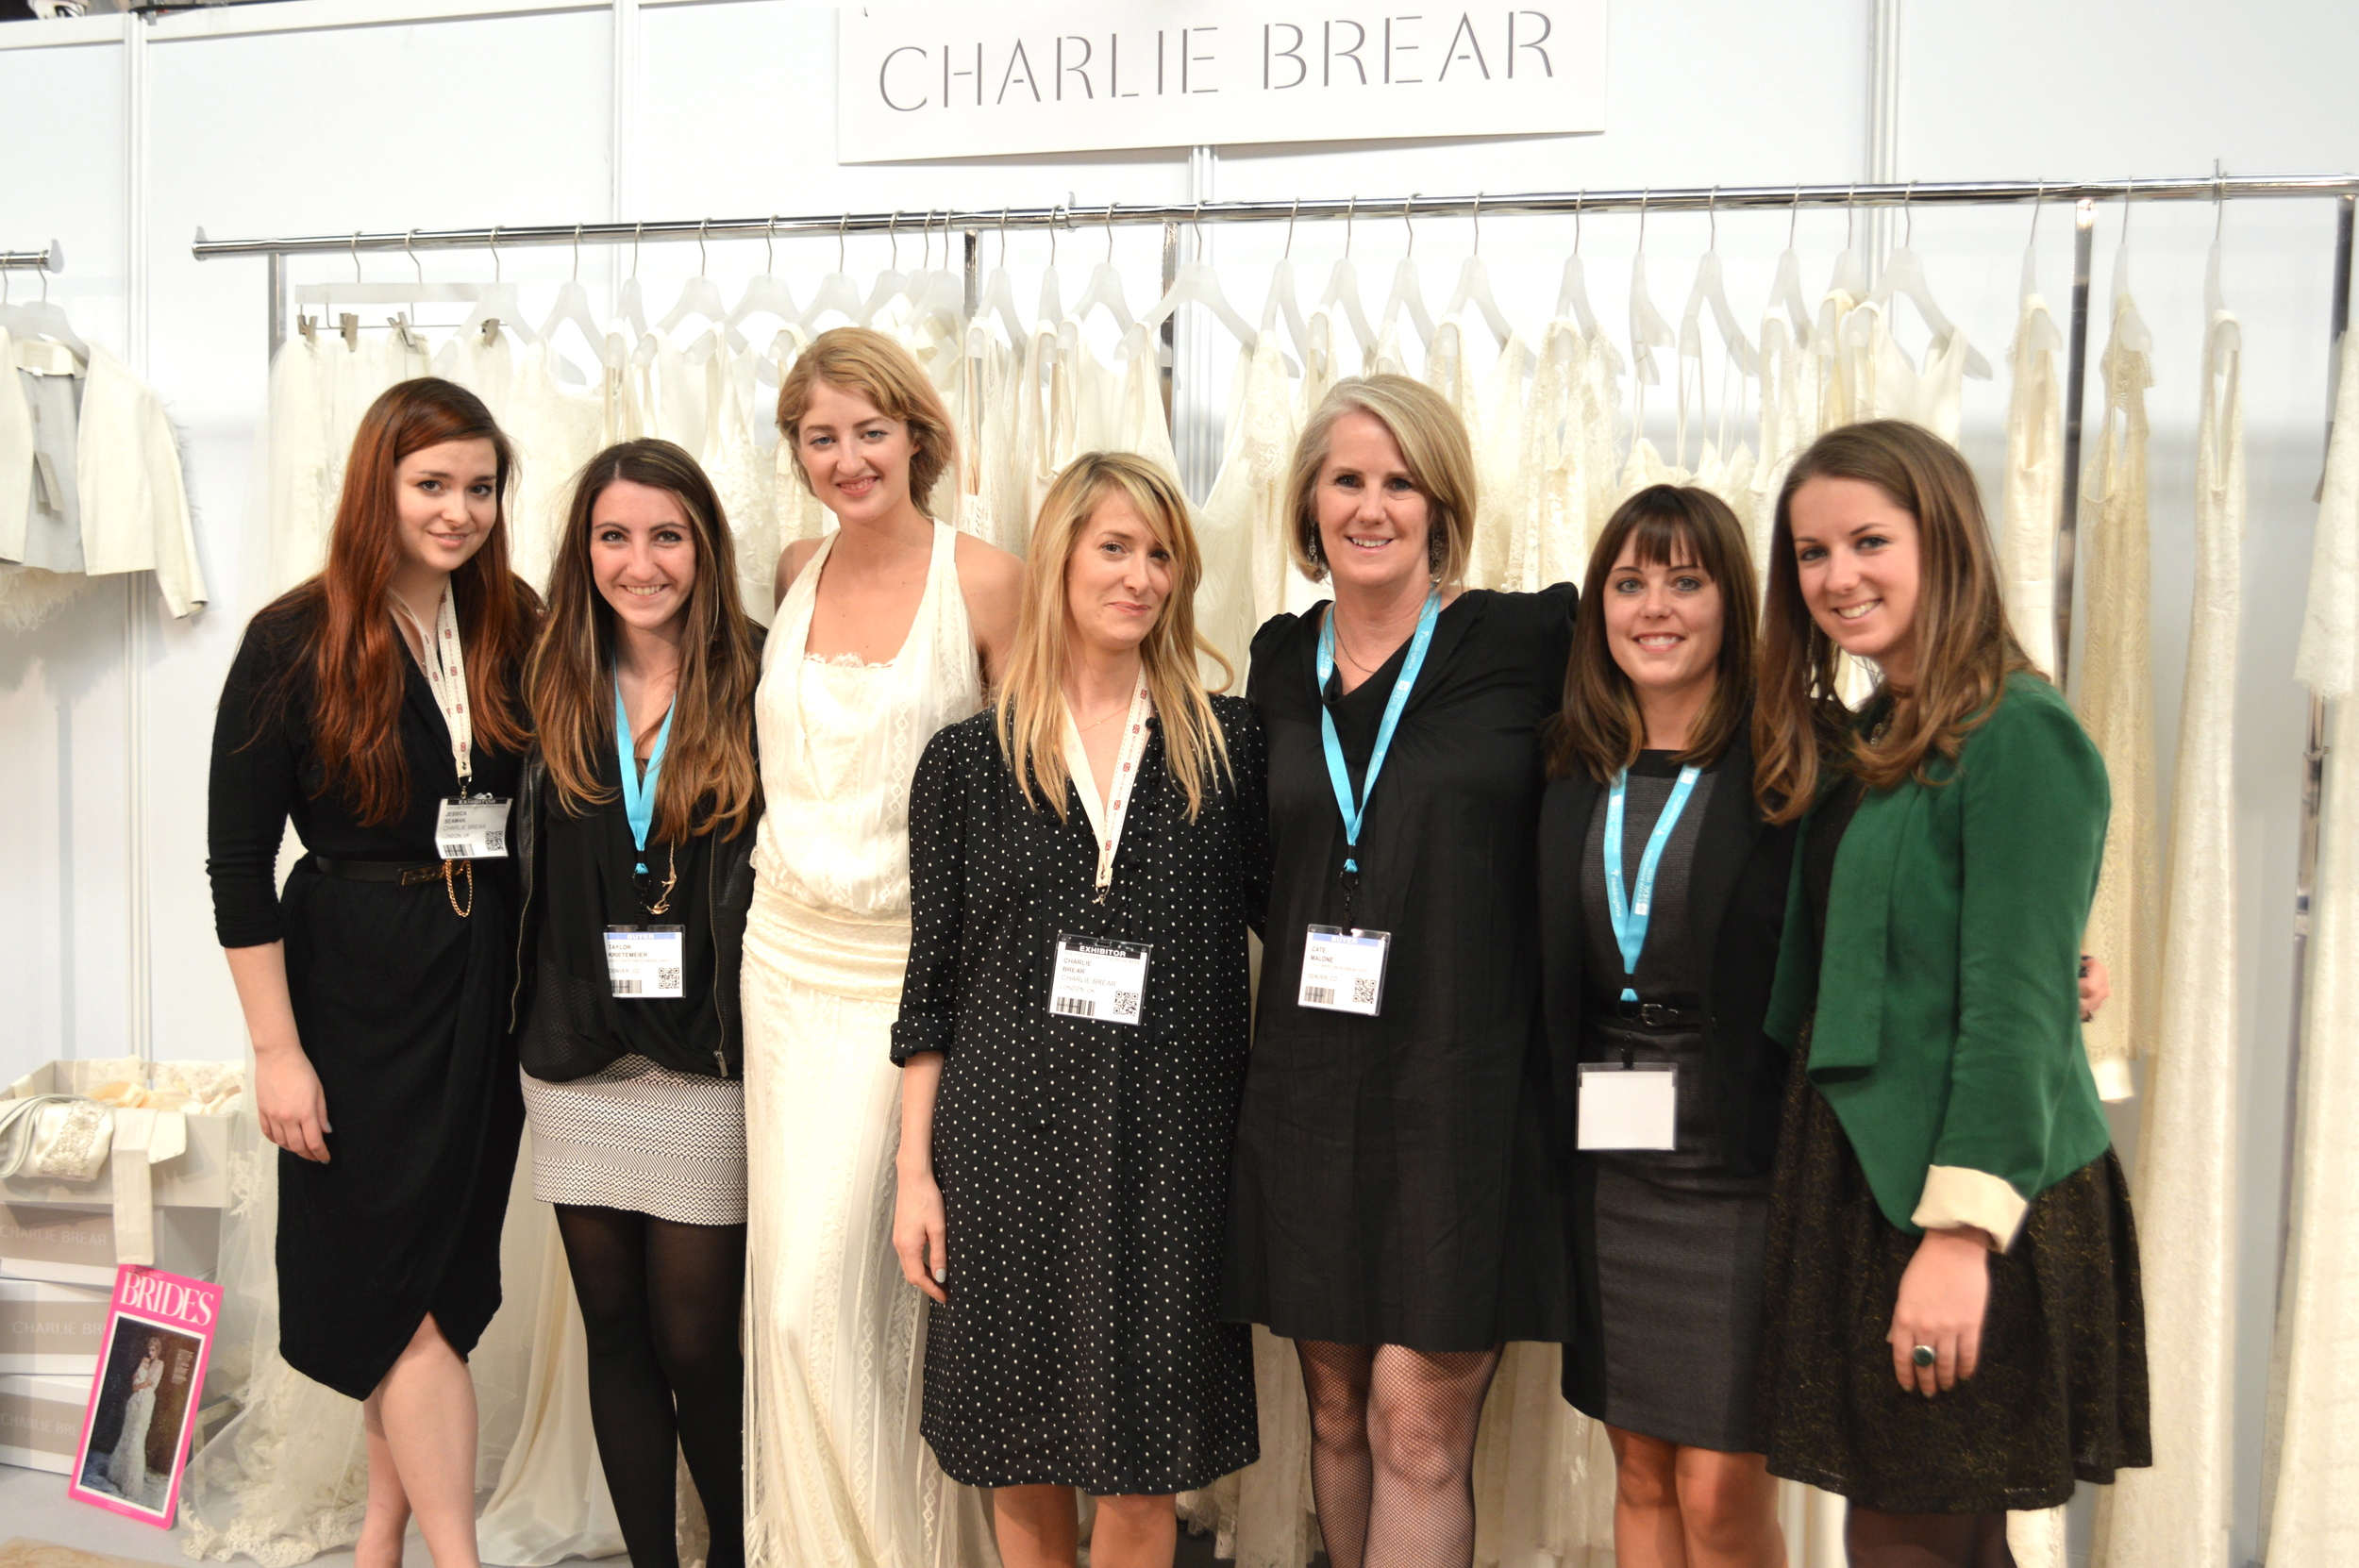 The Little White Dress Bridal Shop ladies with Charlie Brear and her team at New York Bridal Fashion Week.